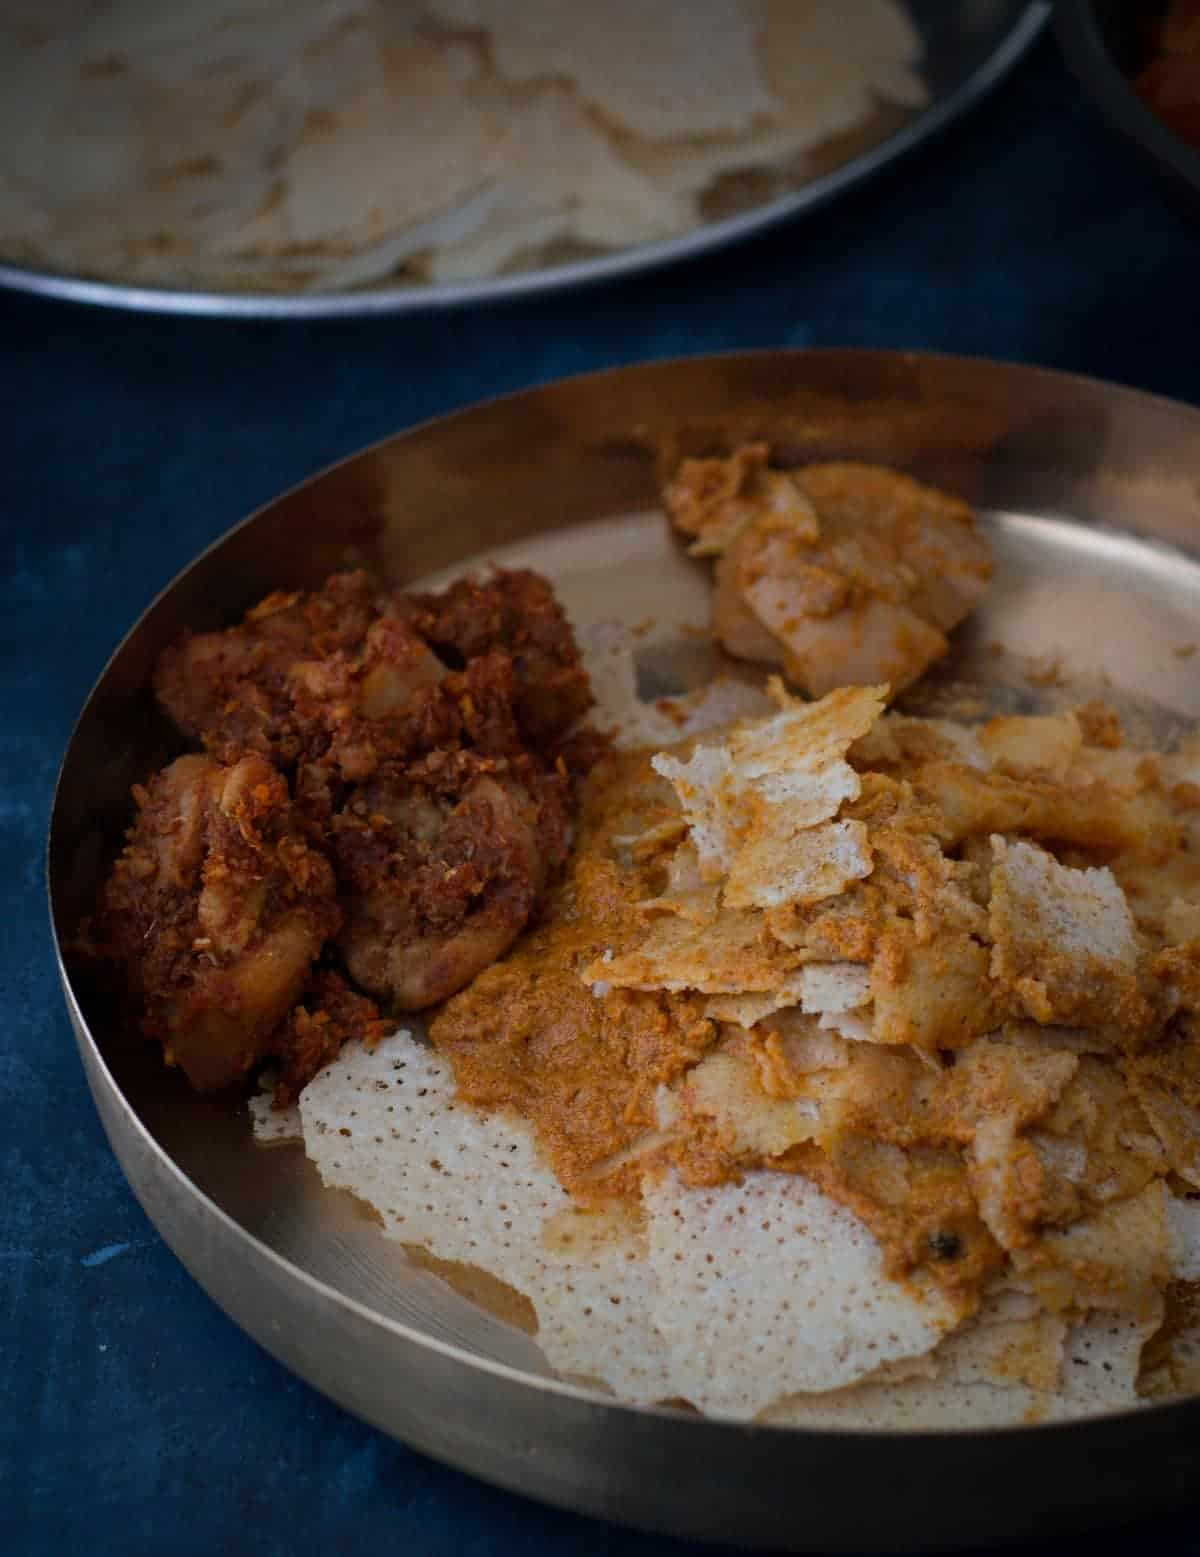 Kori Gassi served with Rutti (crispy thin rice wafers) are like match made in heaven. It is served in a bronze plate along with dry chicken dish (Kori ajadina)